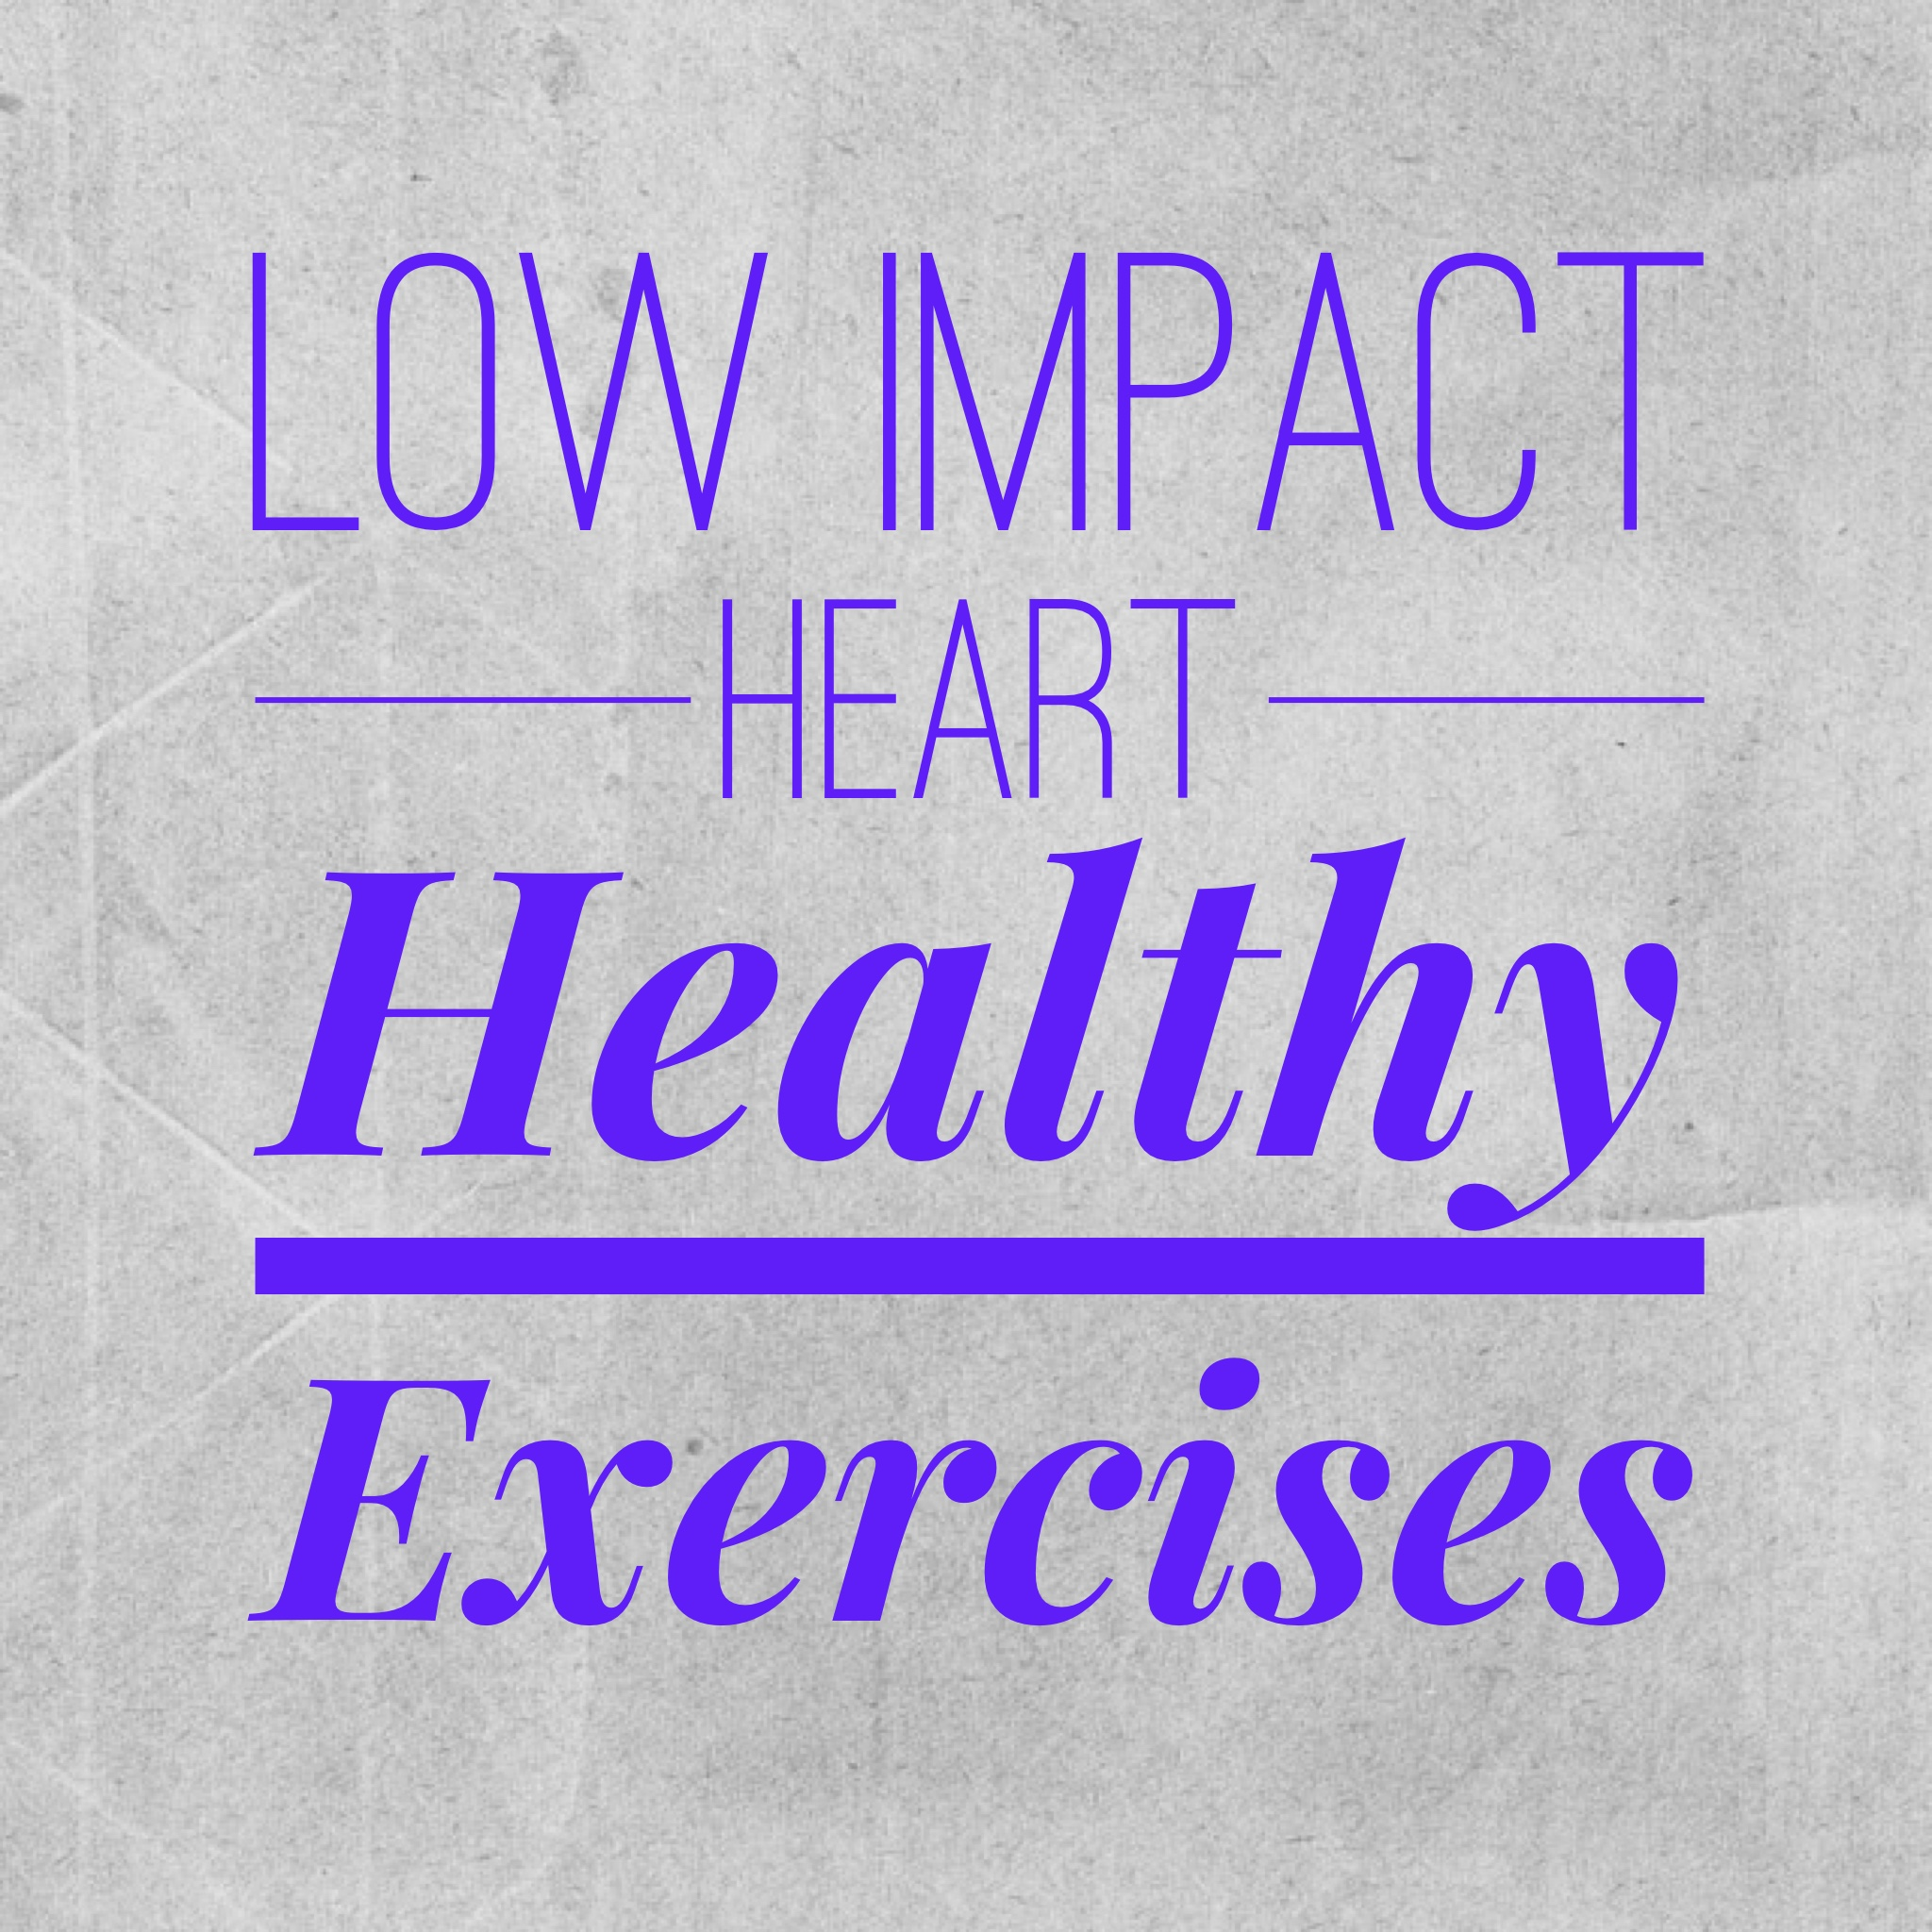 Low Impact Heart Healthy Exercises